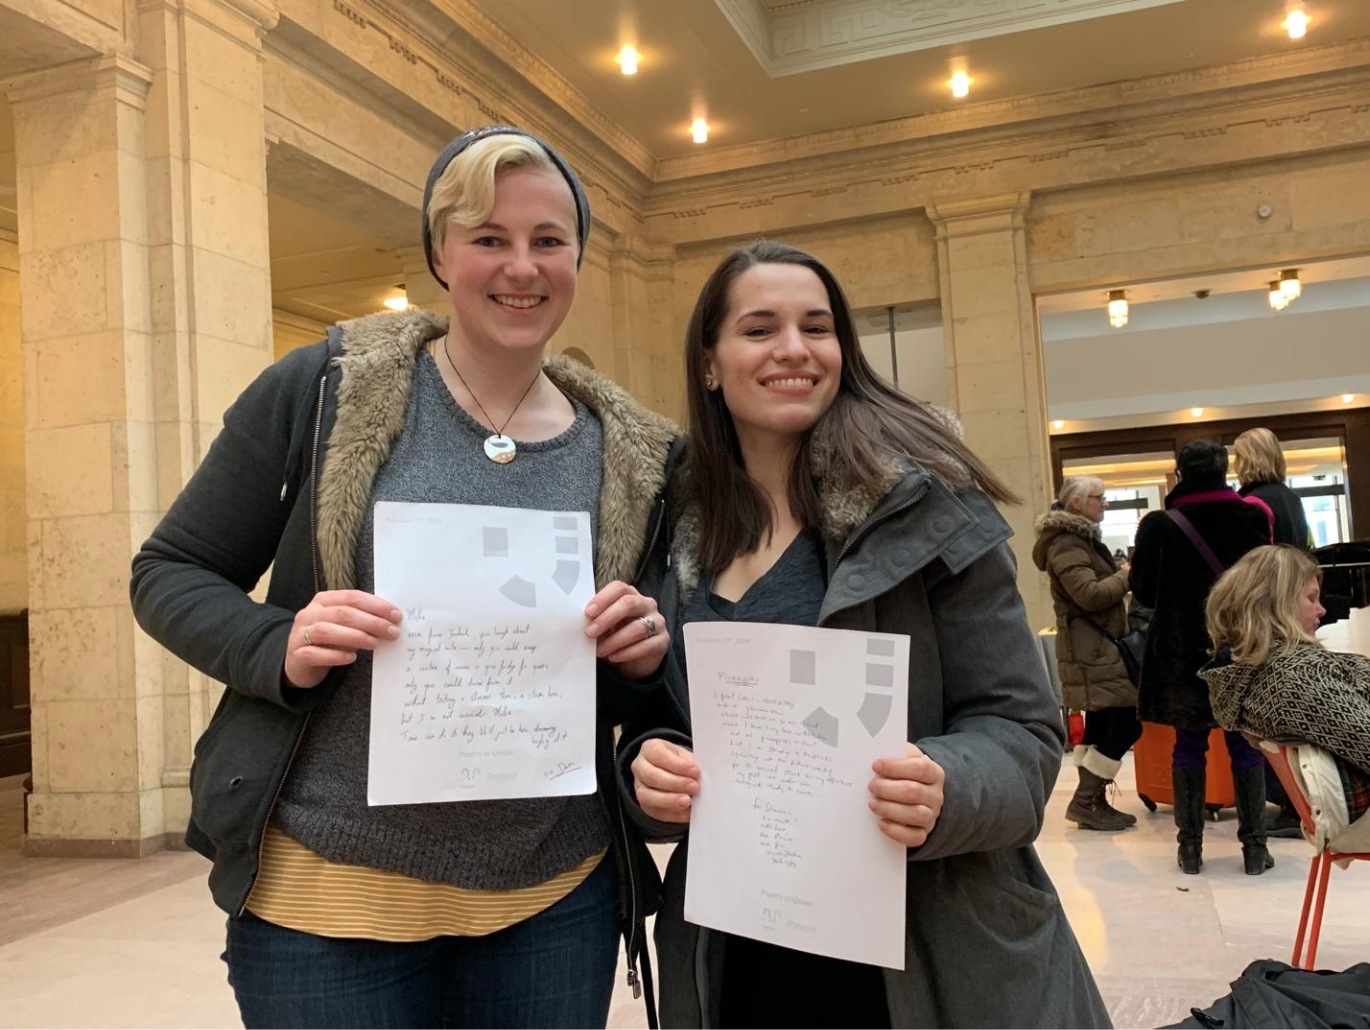 Hannah Martin, left, with her company co-owner Shannon Litt, right, posing with their poems at the event. (CanCulture/Alexander Sowa)